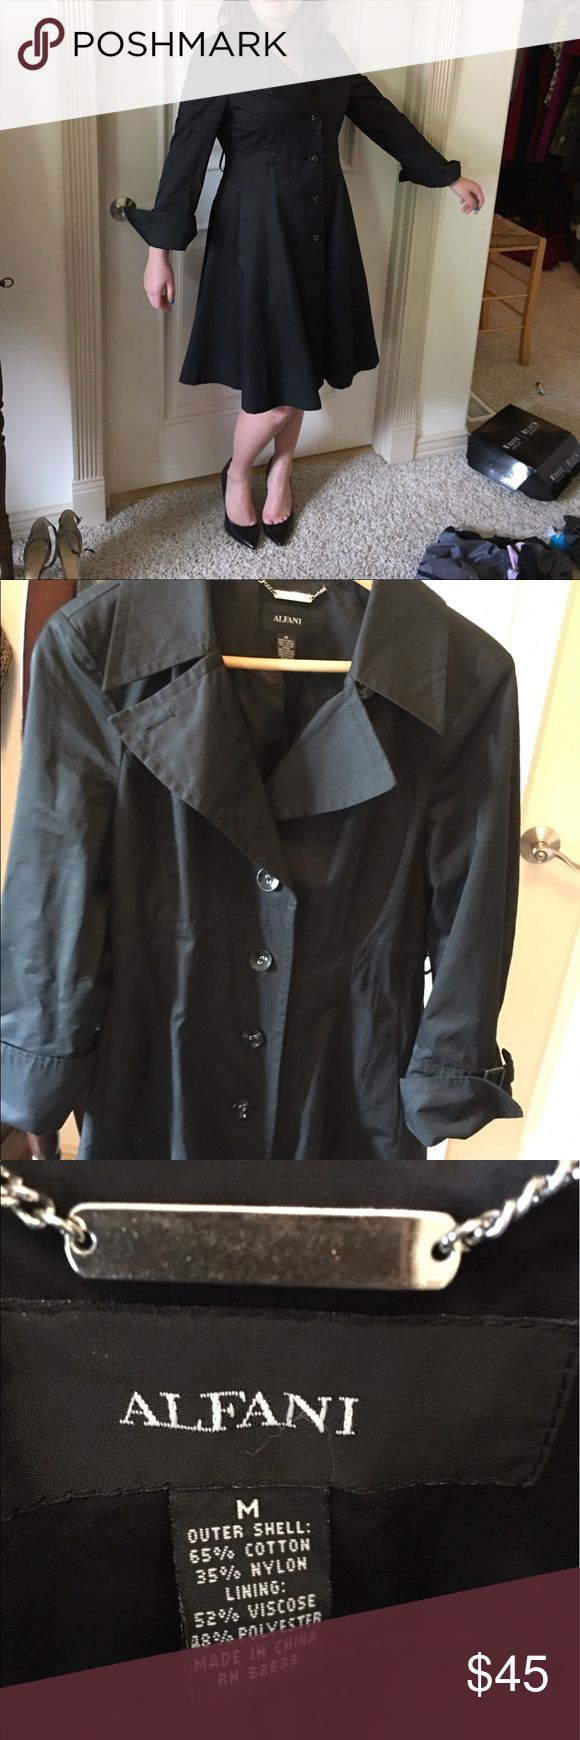 "Alfani black trench coat Alfani black trench coat. Feminine and flattering lines. Length 38"", measures 33"" around the waist. Comes from a smoke free home. Great condition. Jackets & Coats Trench Coats"